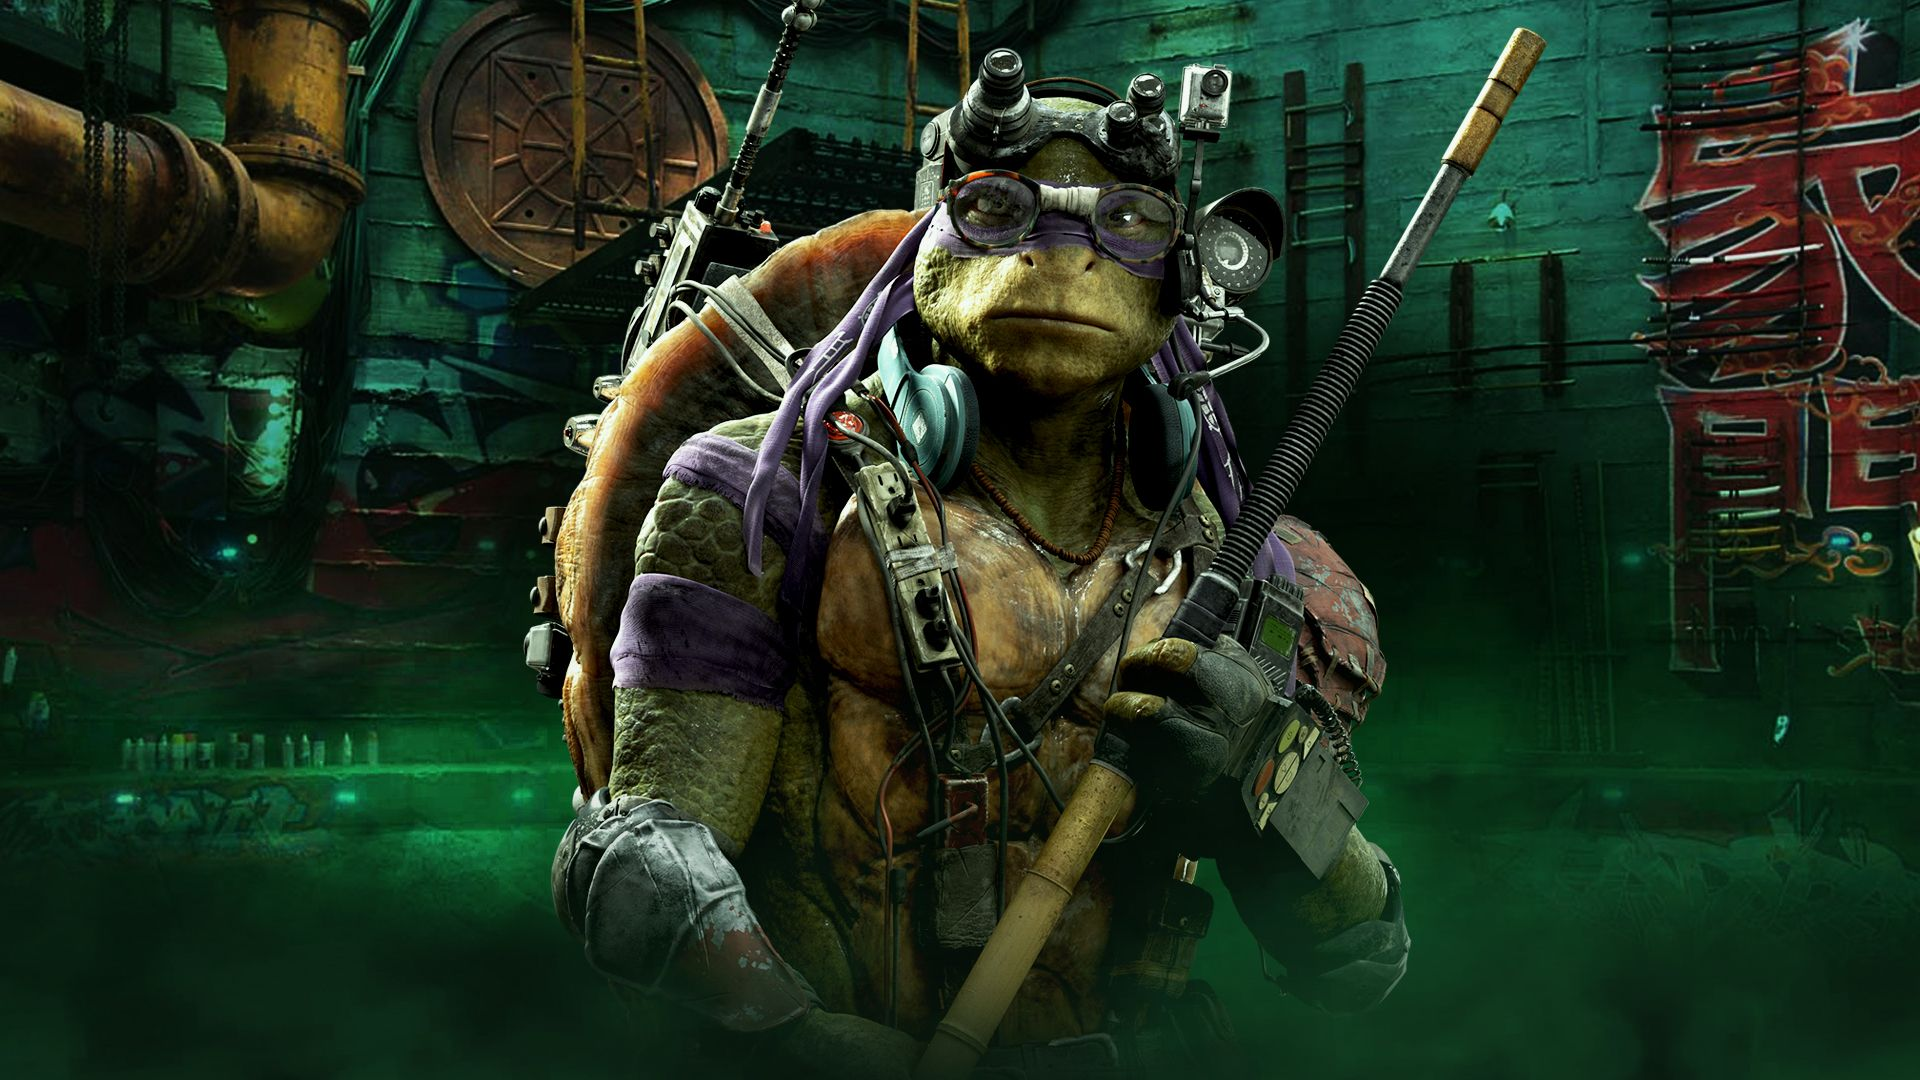 Tmnt Donatello Wallpaper Did You Know Movie Donnie Is 6 Feet 8